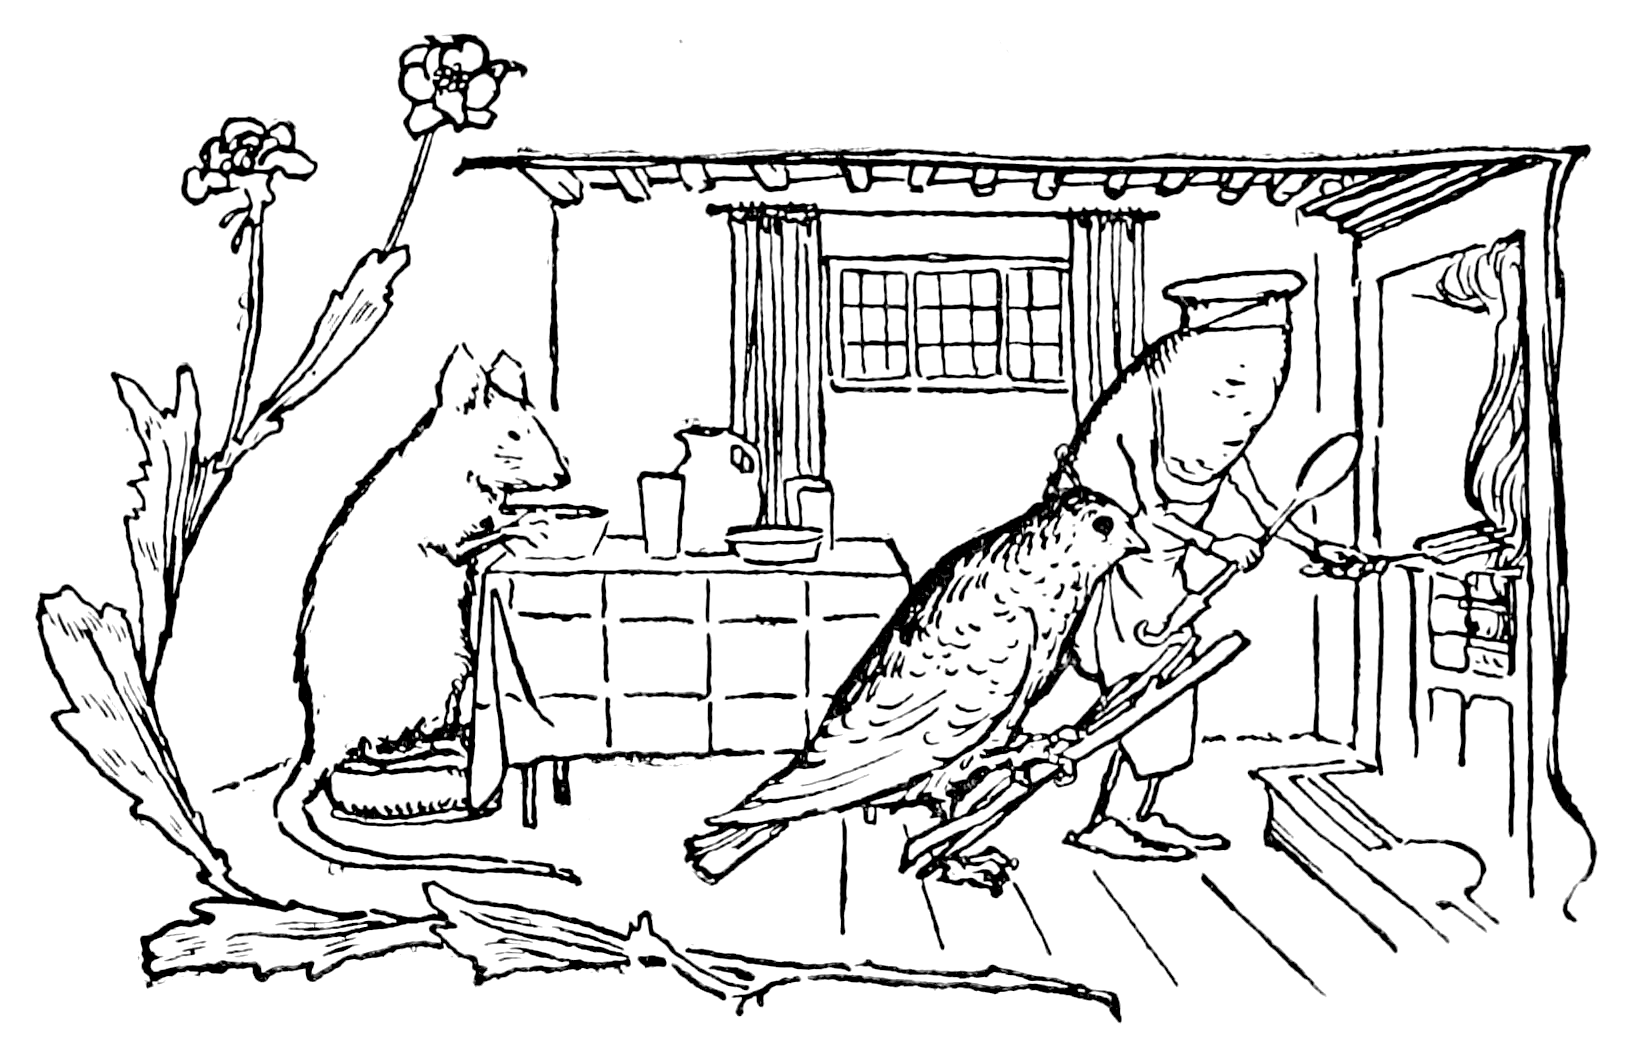 Illustration_at_page_24_in_Grimm's_Household_Tales_(Edwardes,_Bell).png